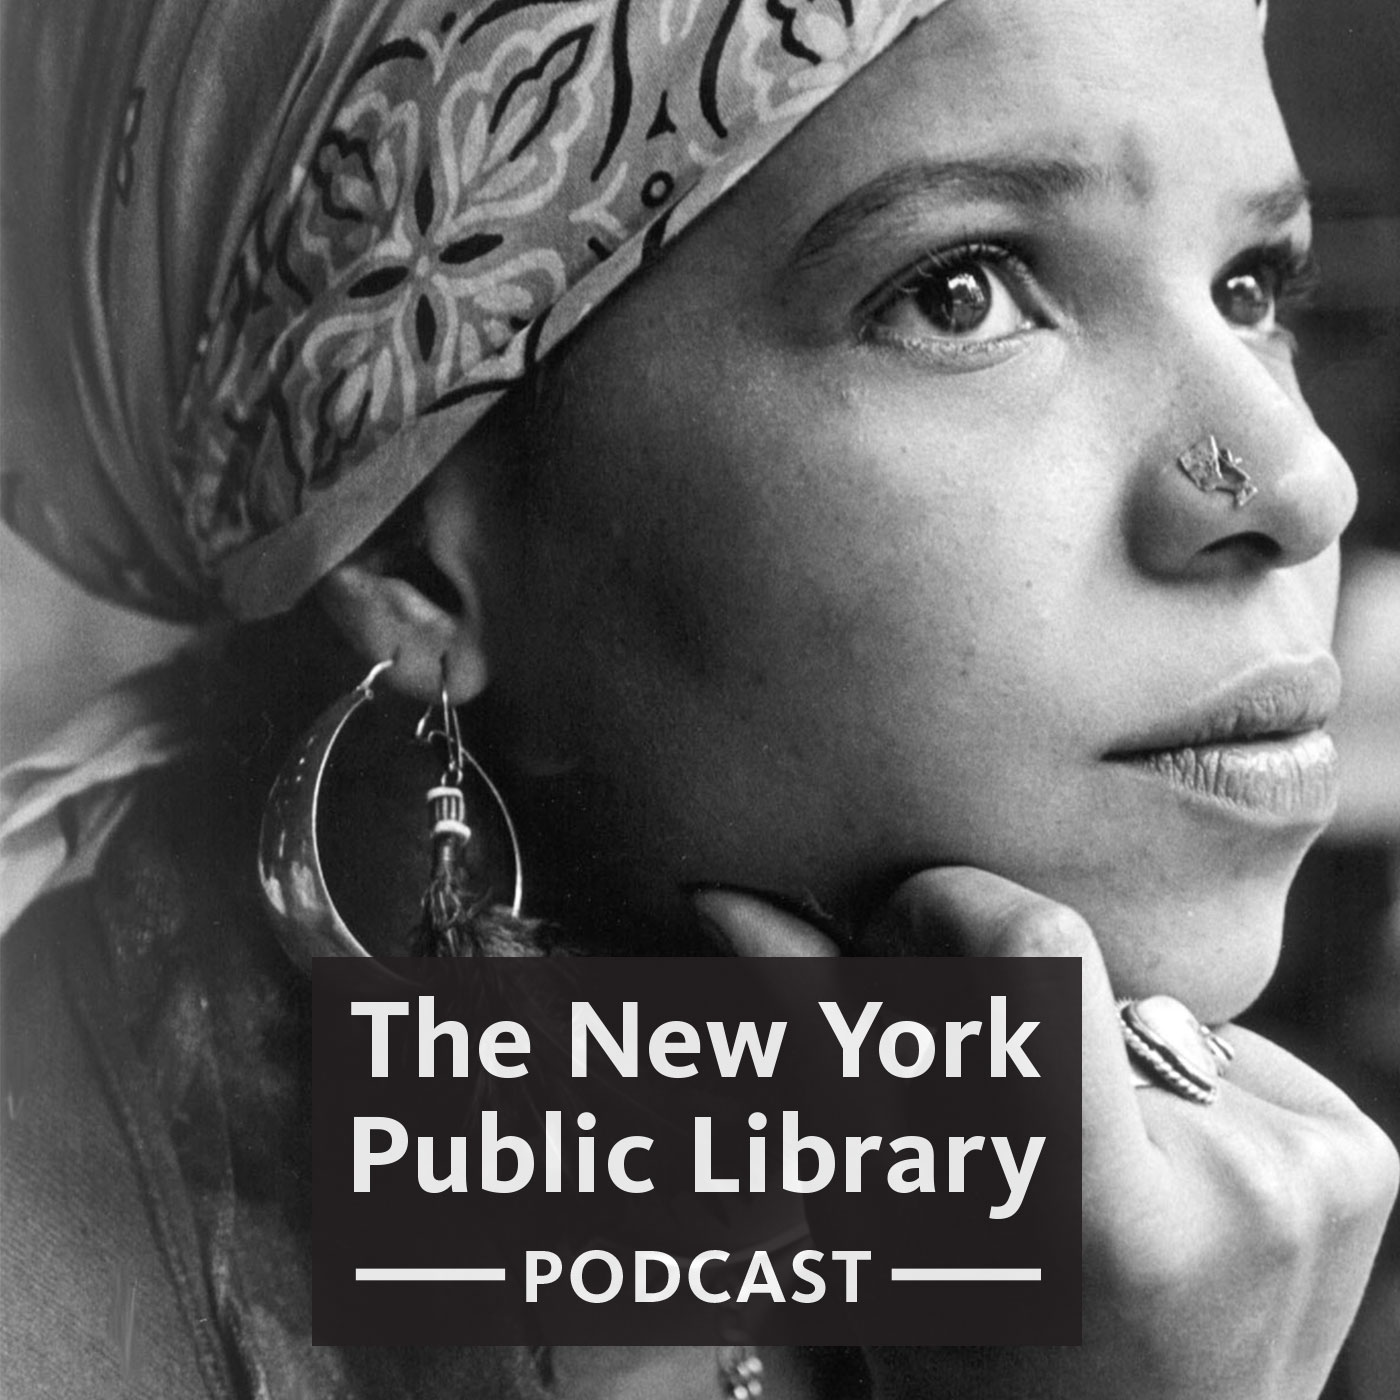 Ntozake Shange on Inspiration & Harlem